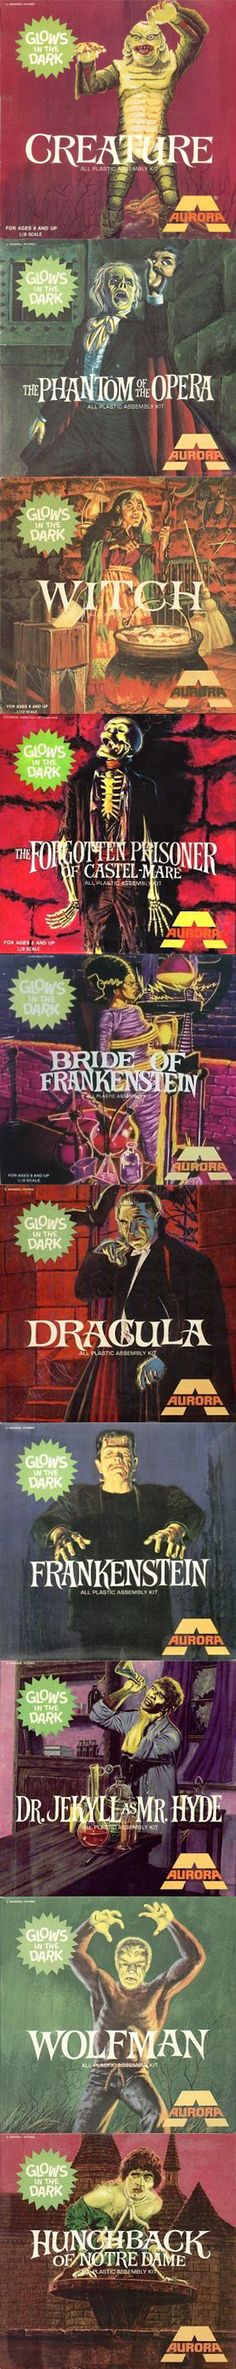 The success of Frankenstein led Aurora to develop and deliver a total of 13 monster kits within six years. Dracula and The Wolf Man came in 1962, while 1963 gave rise to The Mummy, The Creature, and The Phantom of the Opera. In 1964, Aurora debuted The Hunchback of Notre Dame, Dr. Jekyll as Mr. Hyde, King Kong, and Godzilla. And in a nod to femme fatales, the Salem Witch and The Bride of Frankenstein were also unveiled. In 1966, Aurora released its final classic monster kit, The Forgotten…